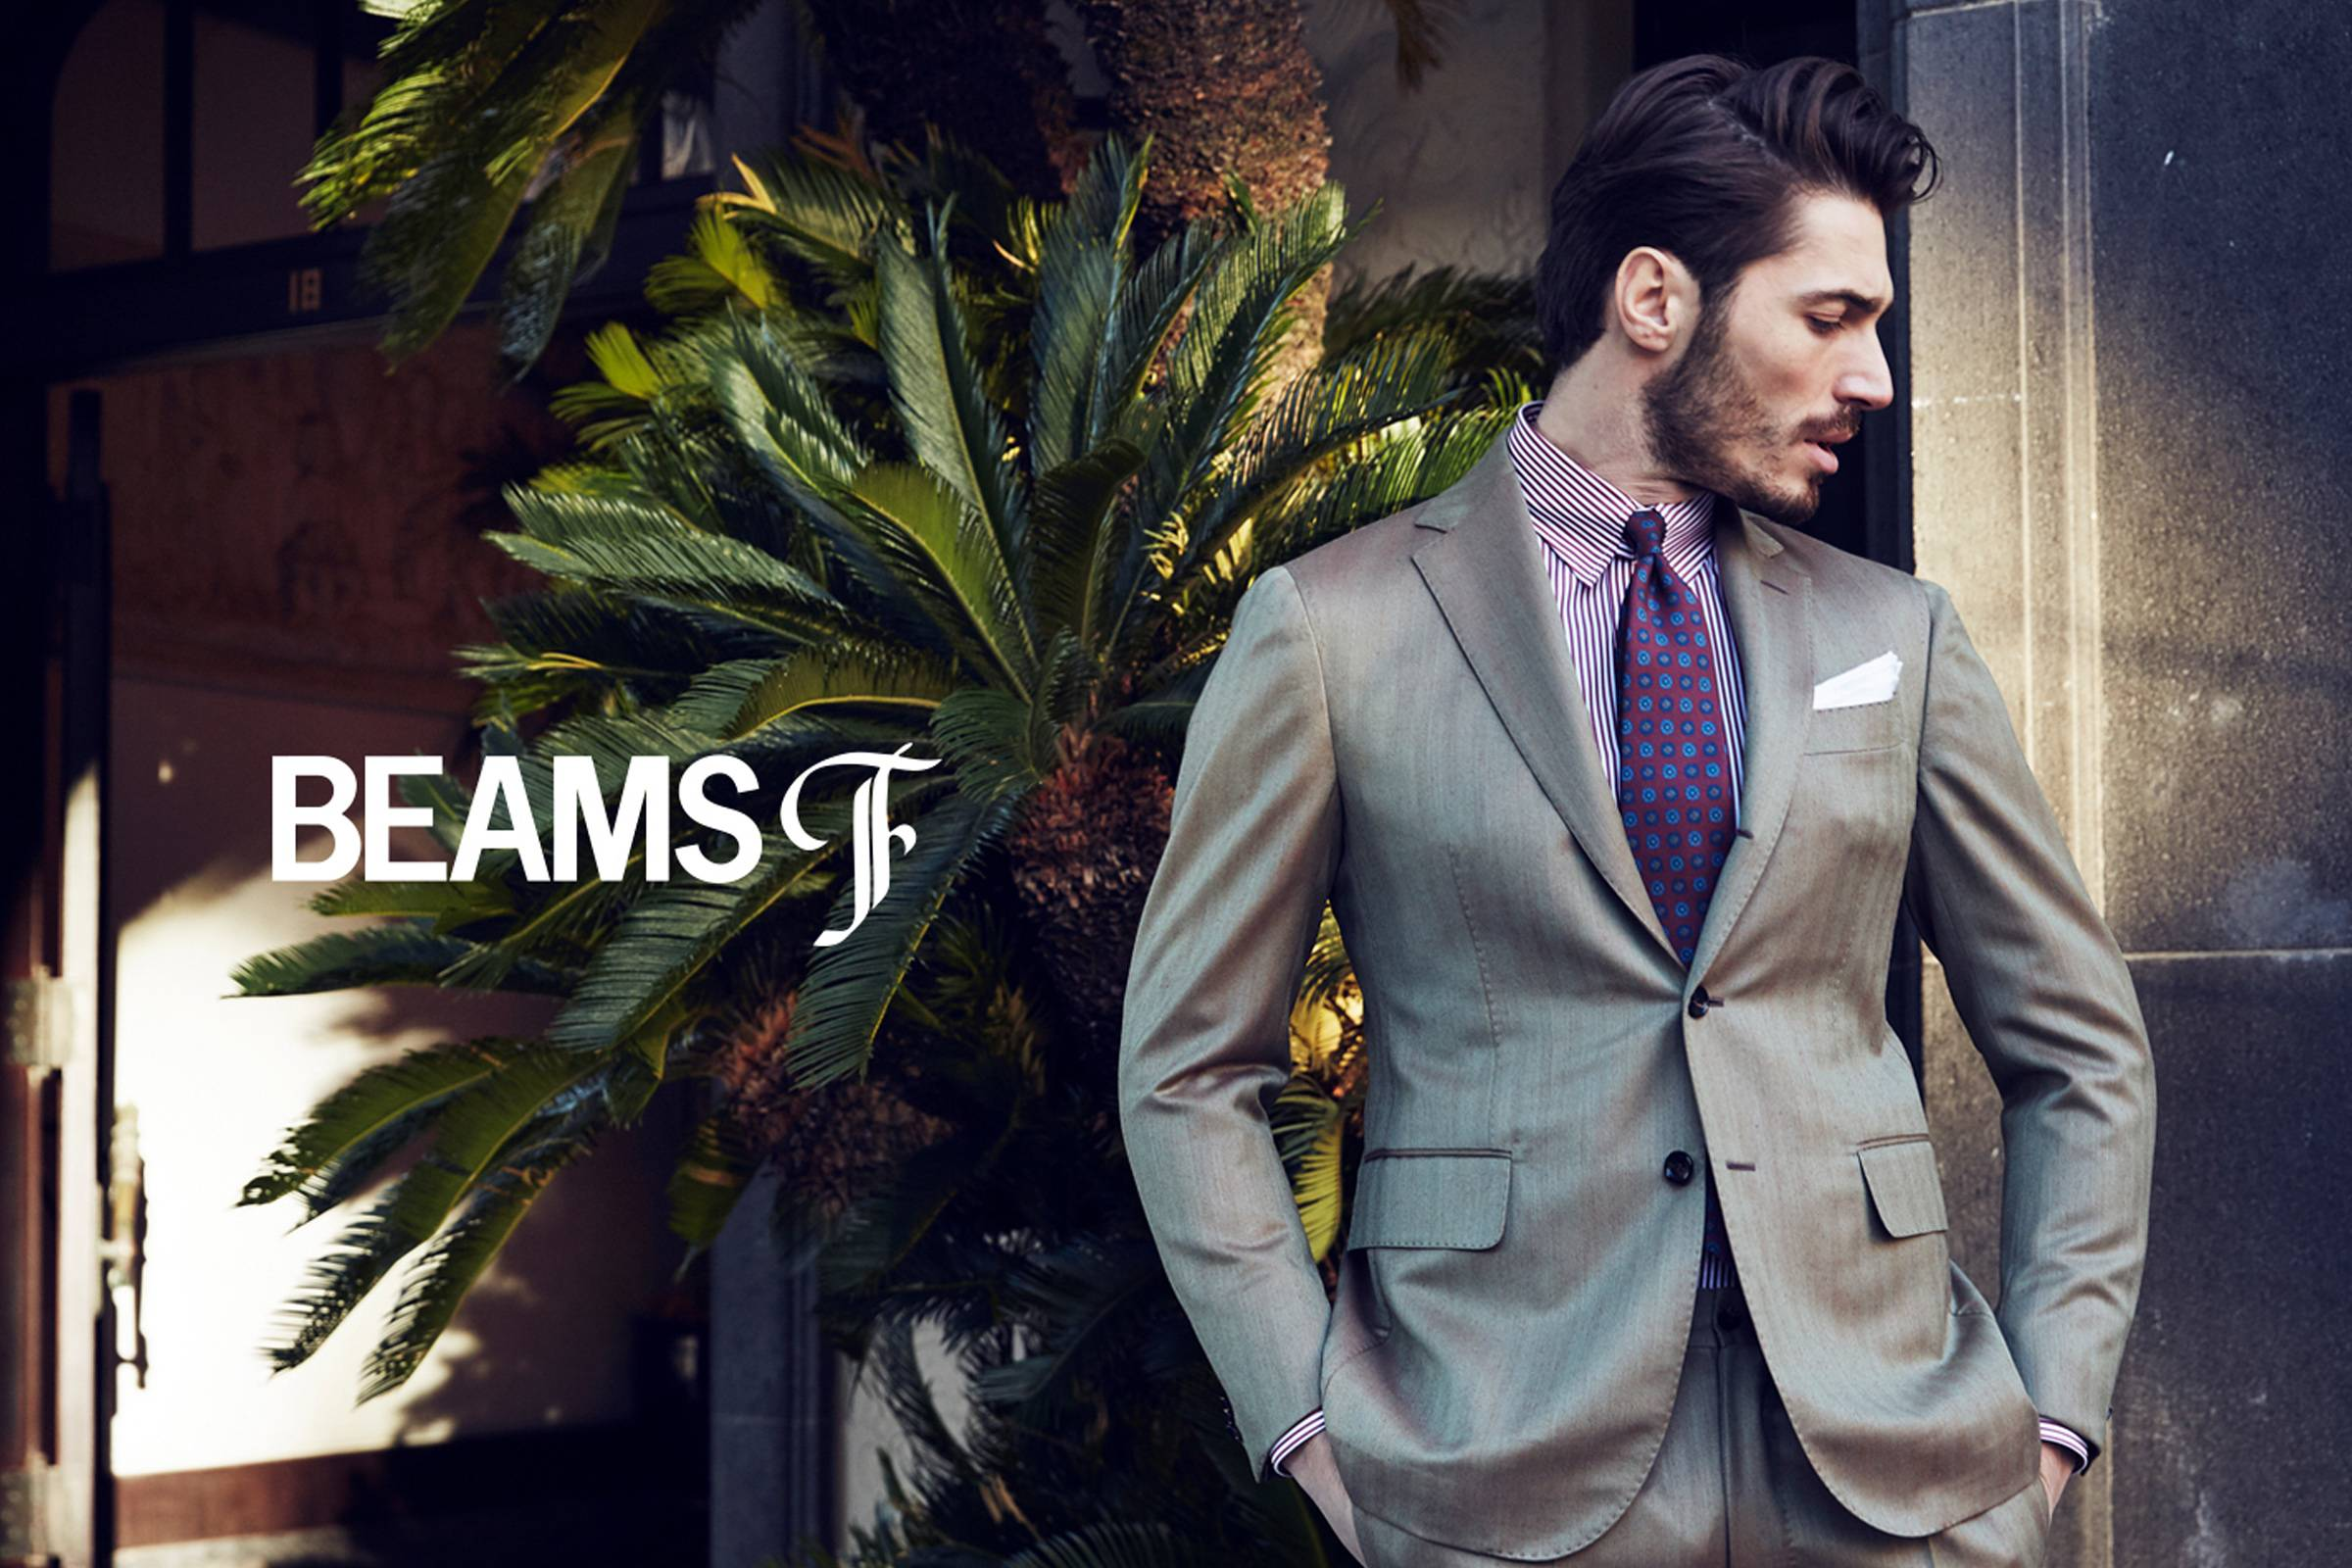 Influential japanese lifestyle and apparel brand beams has - That Idea Is Exactly What Beams Scarcely Known In The States But Massive In Both Size And Influence In Japan Was Built Upon